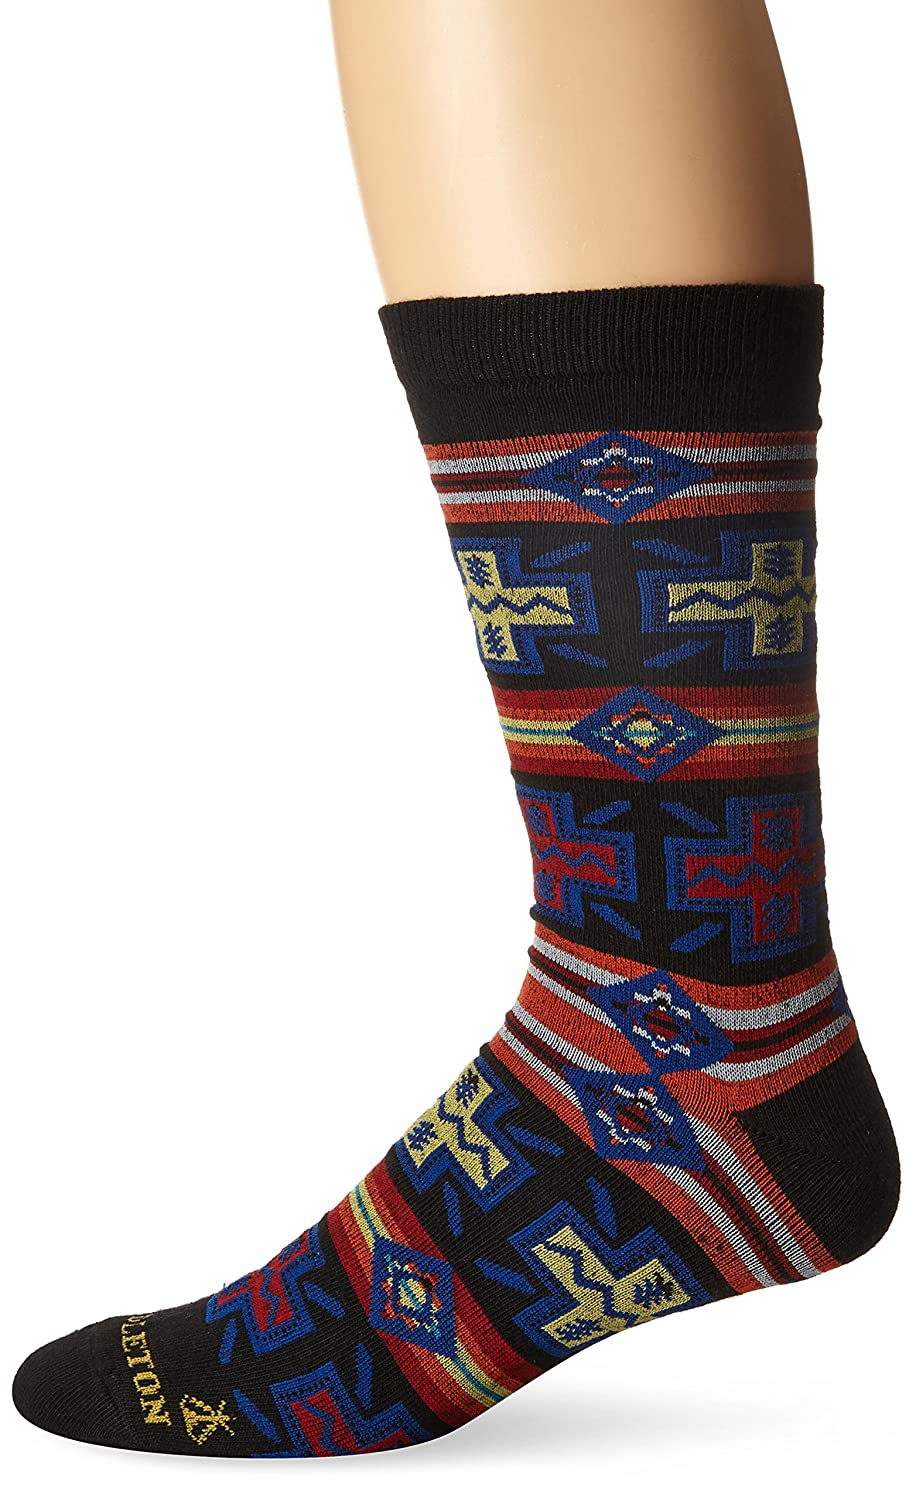 Pendleton Men's Pueblo Cross Crew Socks, Black, Large(9-12) McCubbin Hoisery 6438-M